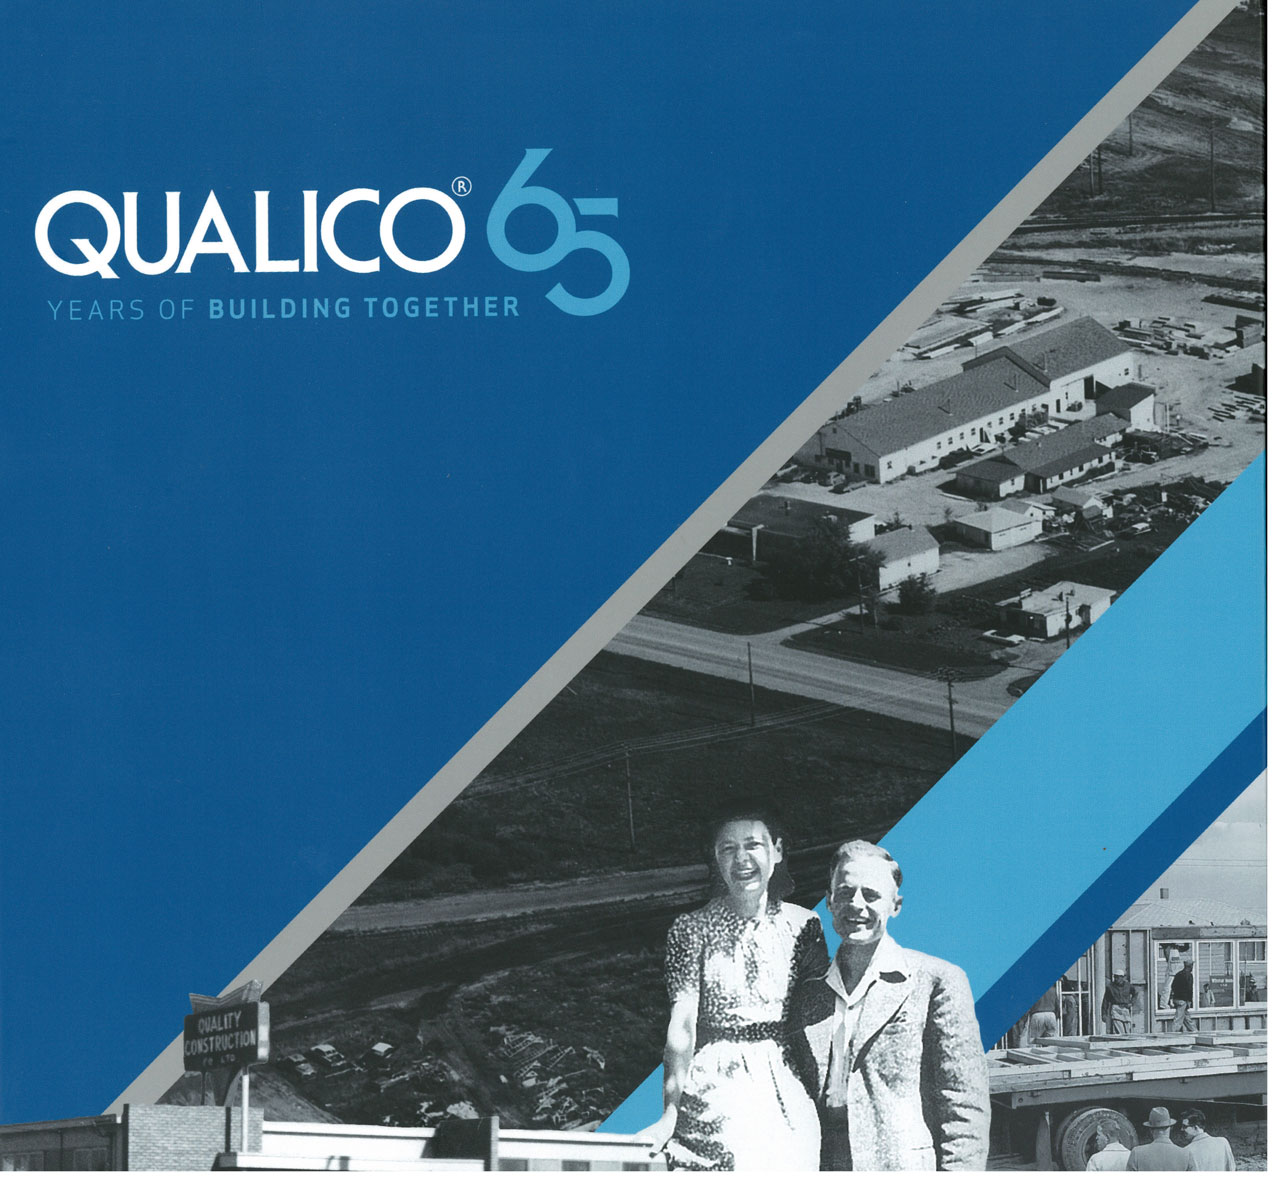 2016-2011 Qualico 65 Years of Building together